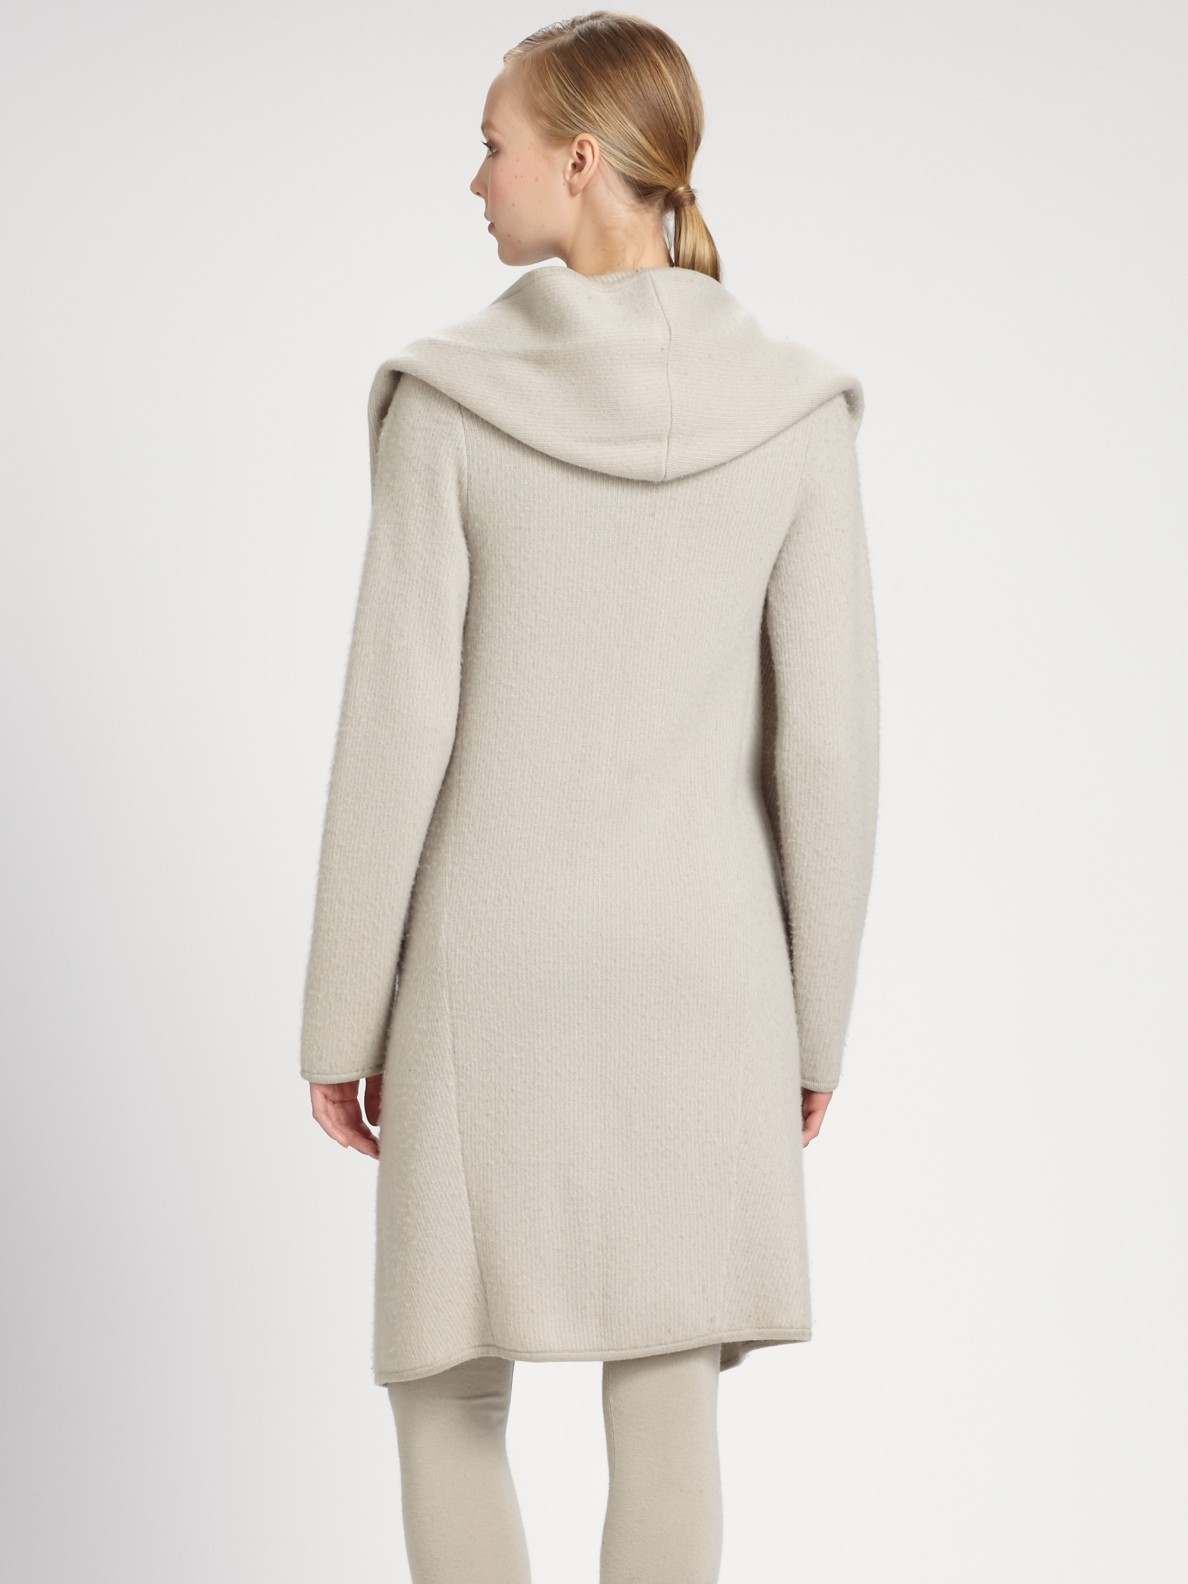 Donna karan Hooded Drapedfront Cashmere Coat in Gray | Lyst